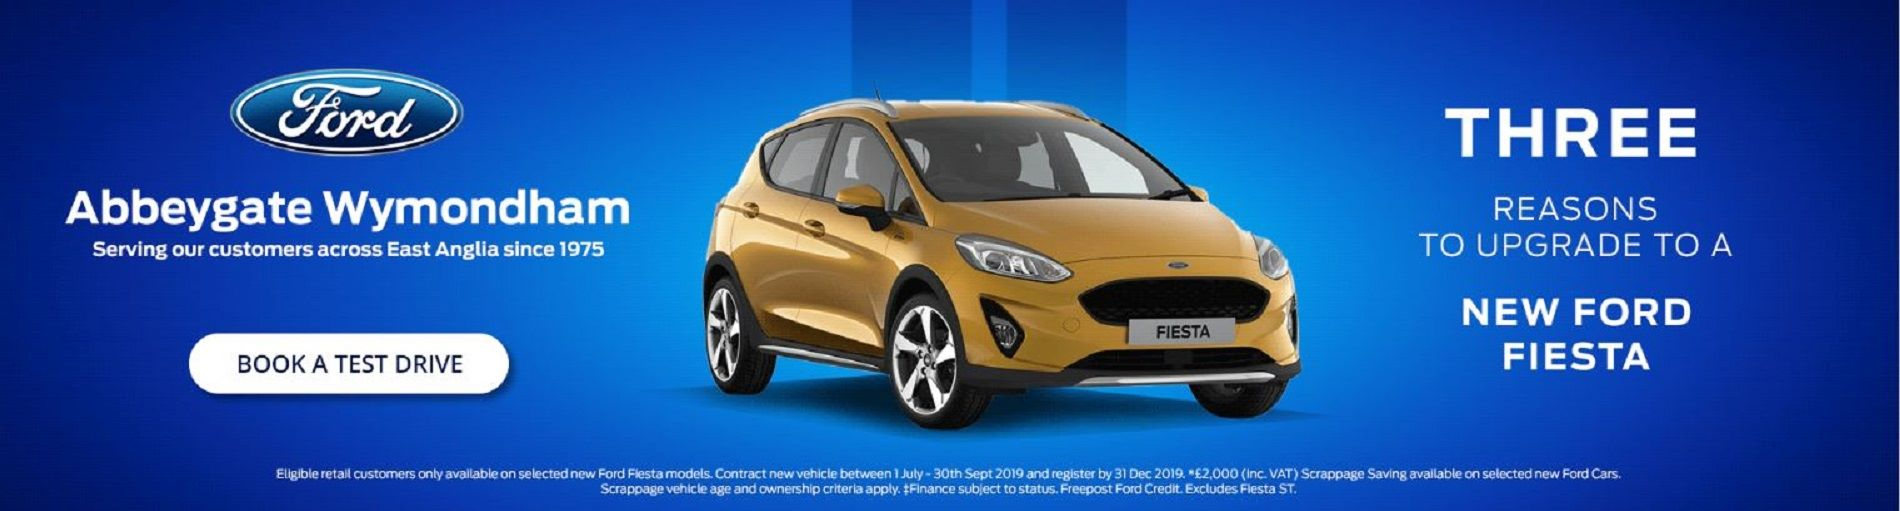 Three Reasons to Upgrade to a New Fiesta